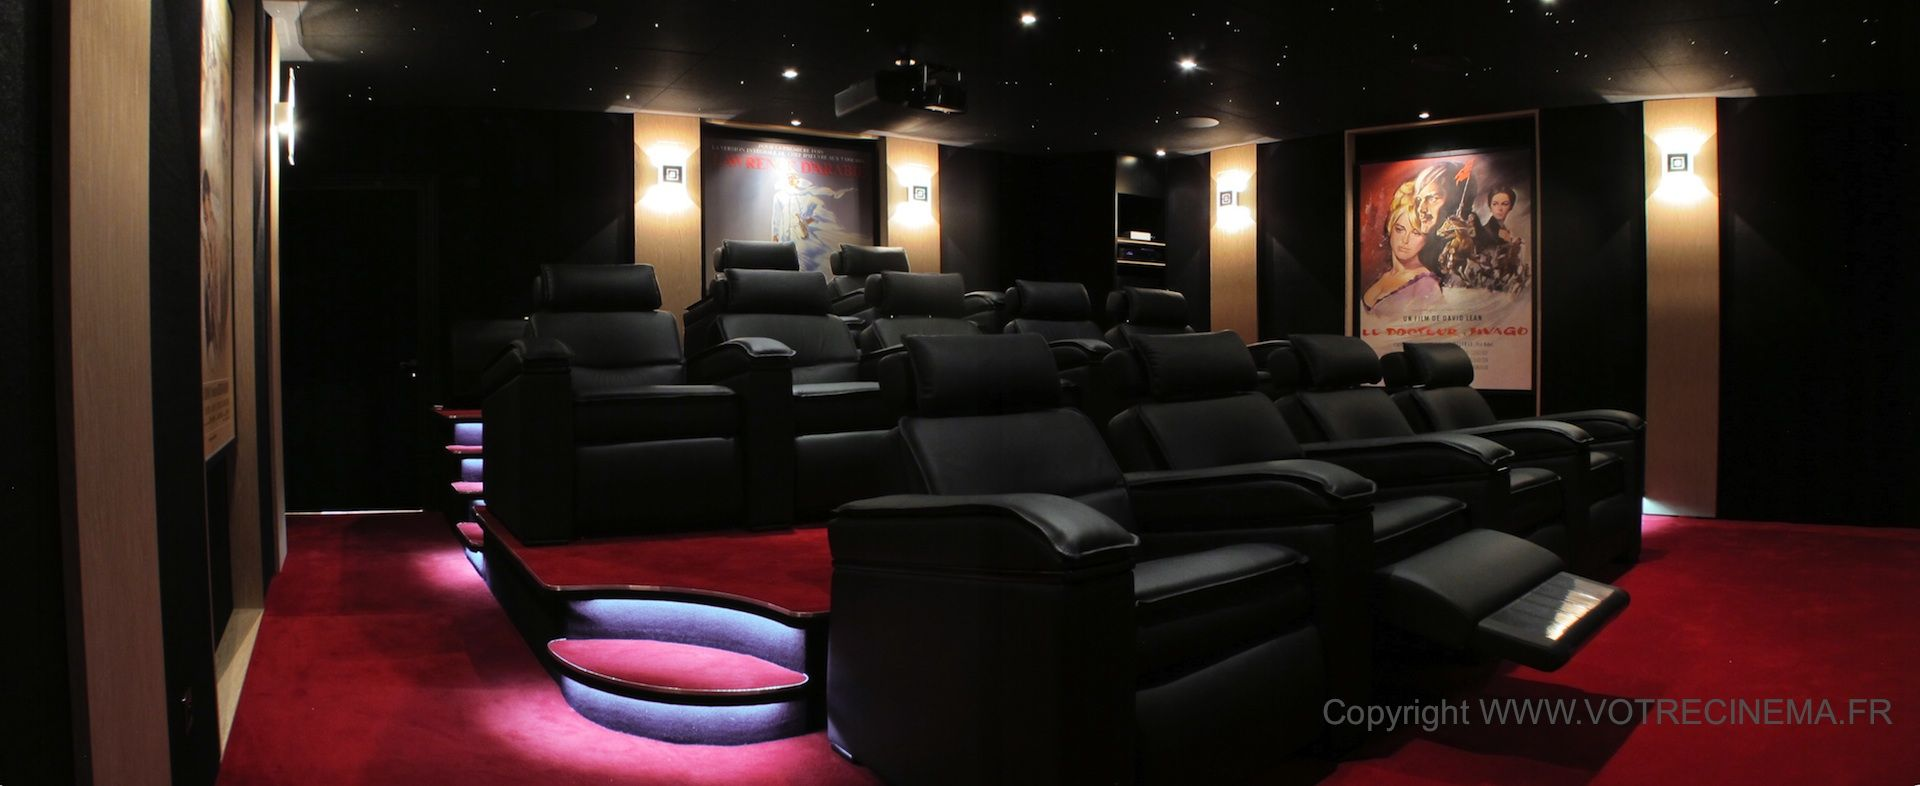 Unique Luxury  U0026 Private Home Cinema Made For A 45 M2 Room In The South Of France  This Room Was